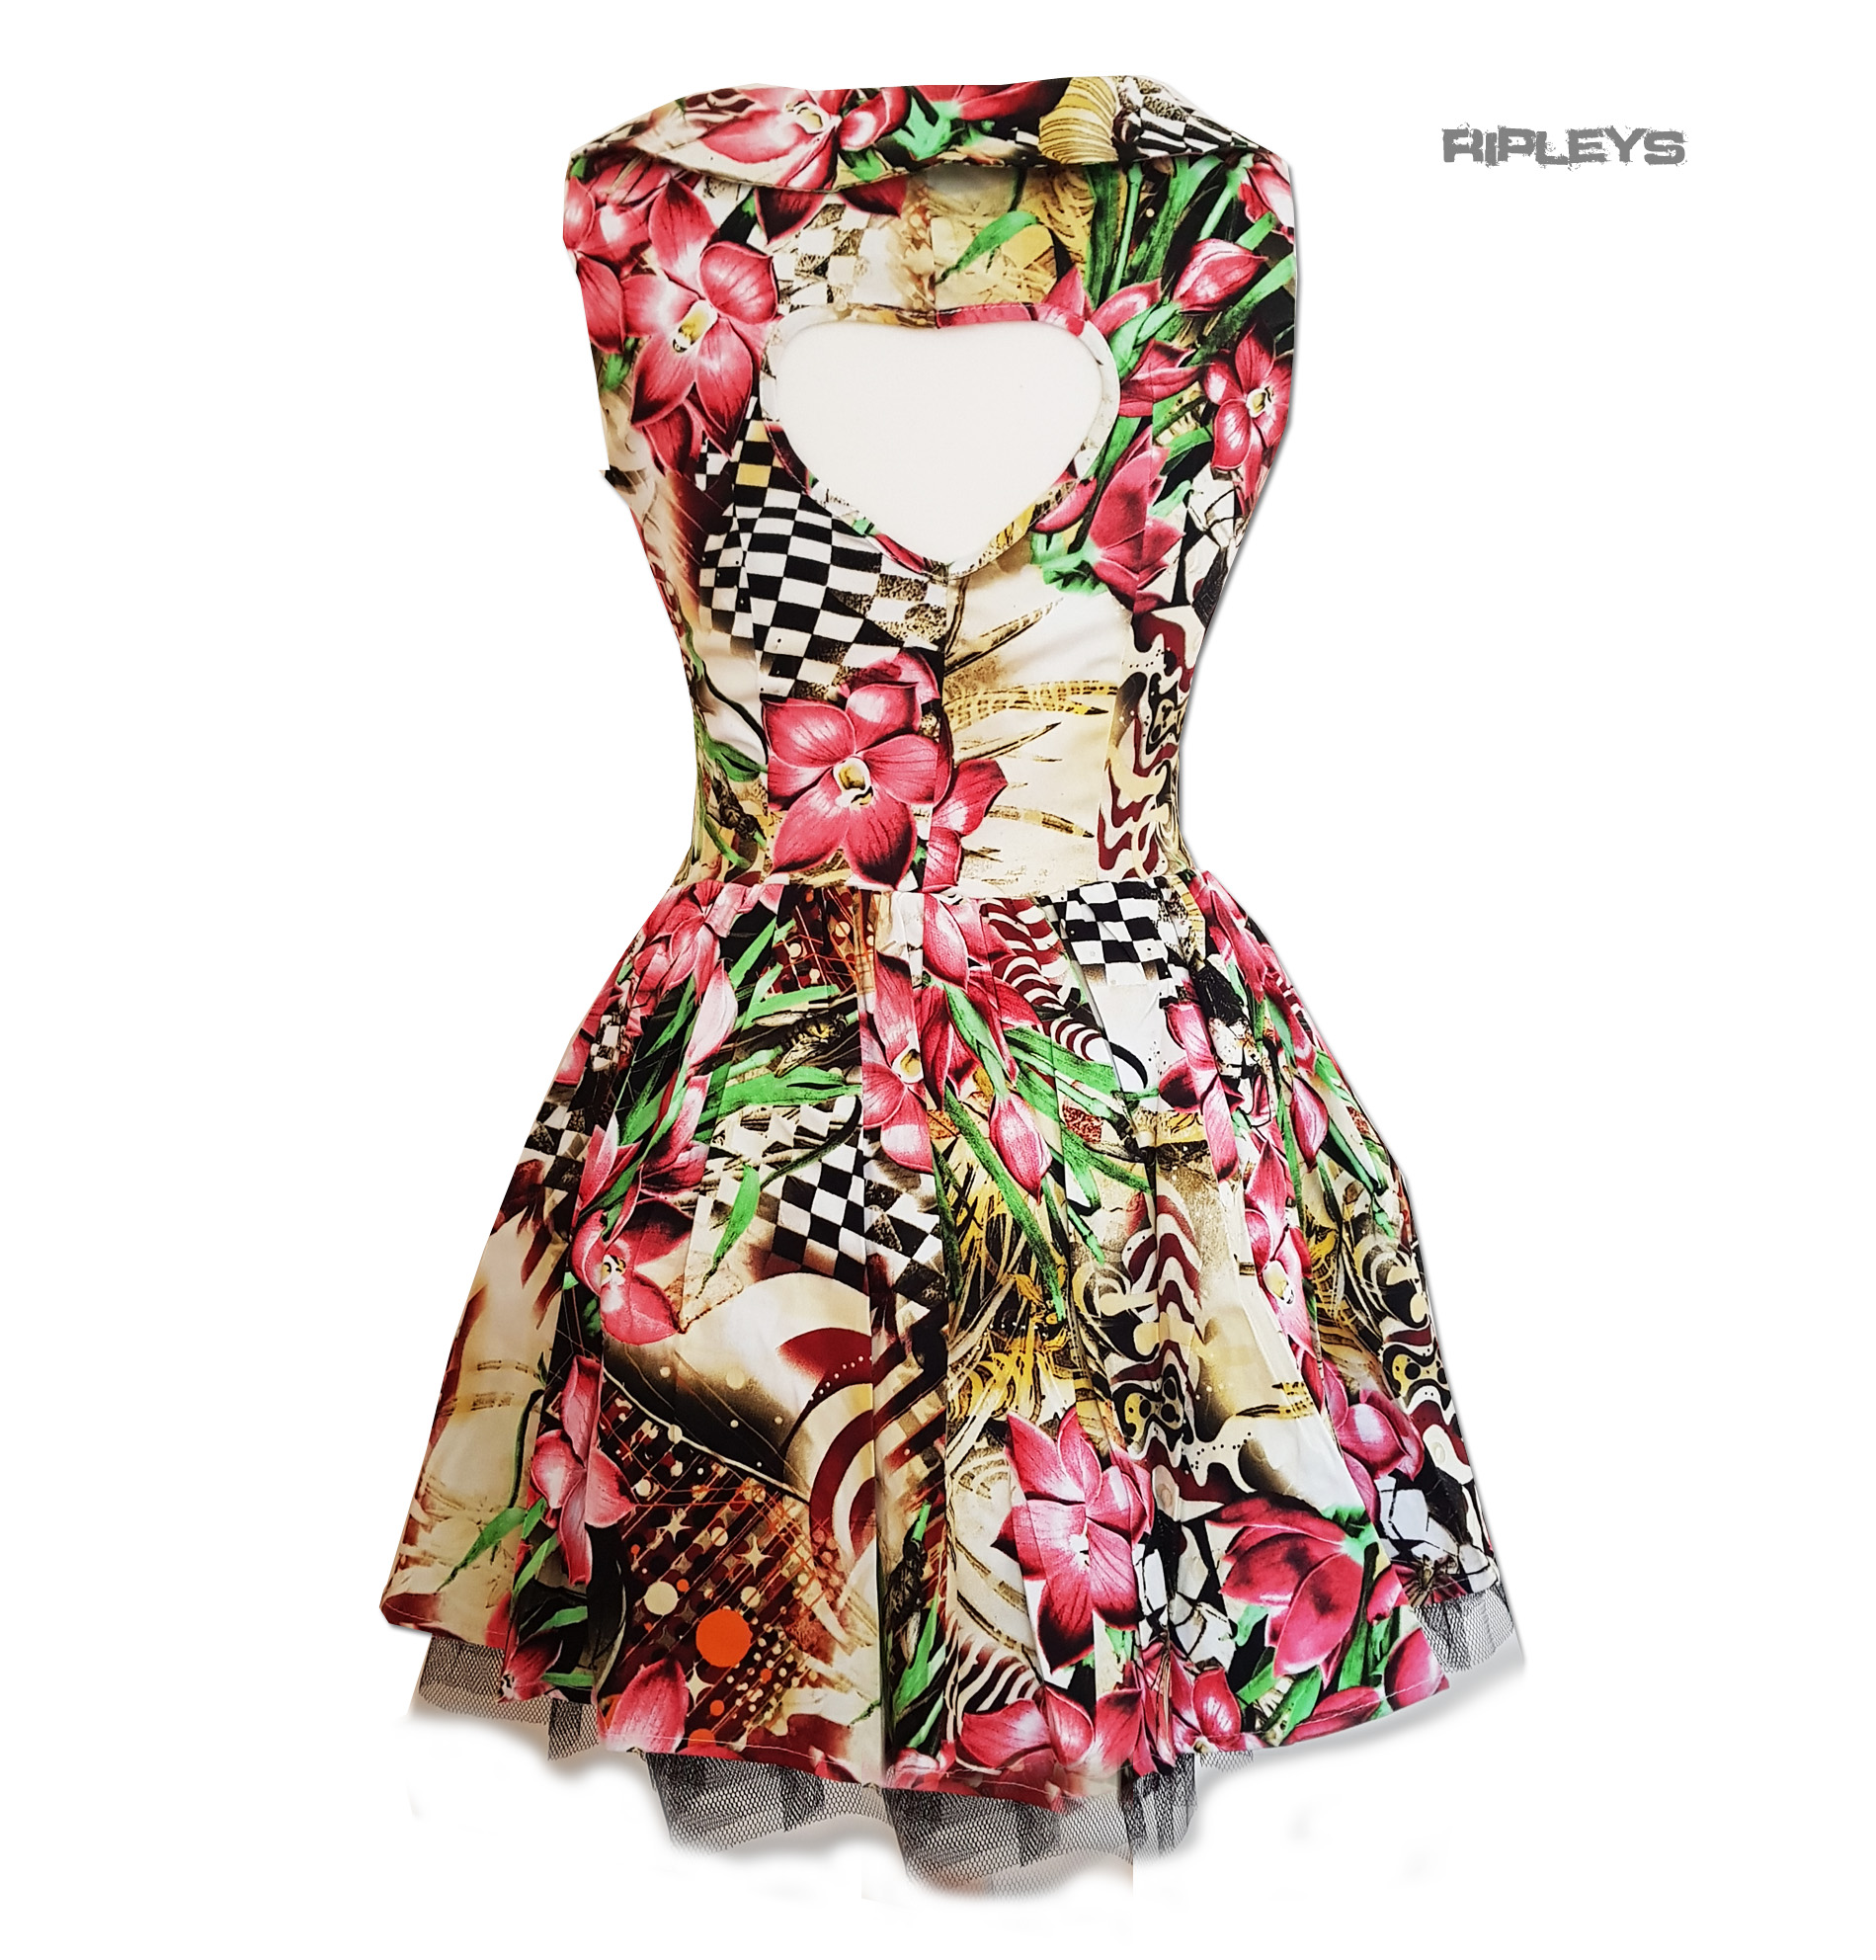 H-amp-R-Hearts-amp-Roses-London-Pink-Mini-Dress-039-Lily-Checkerboard-039-Flowers-All-Sizes thumbnail 12